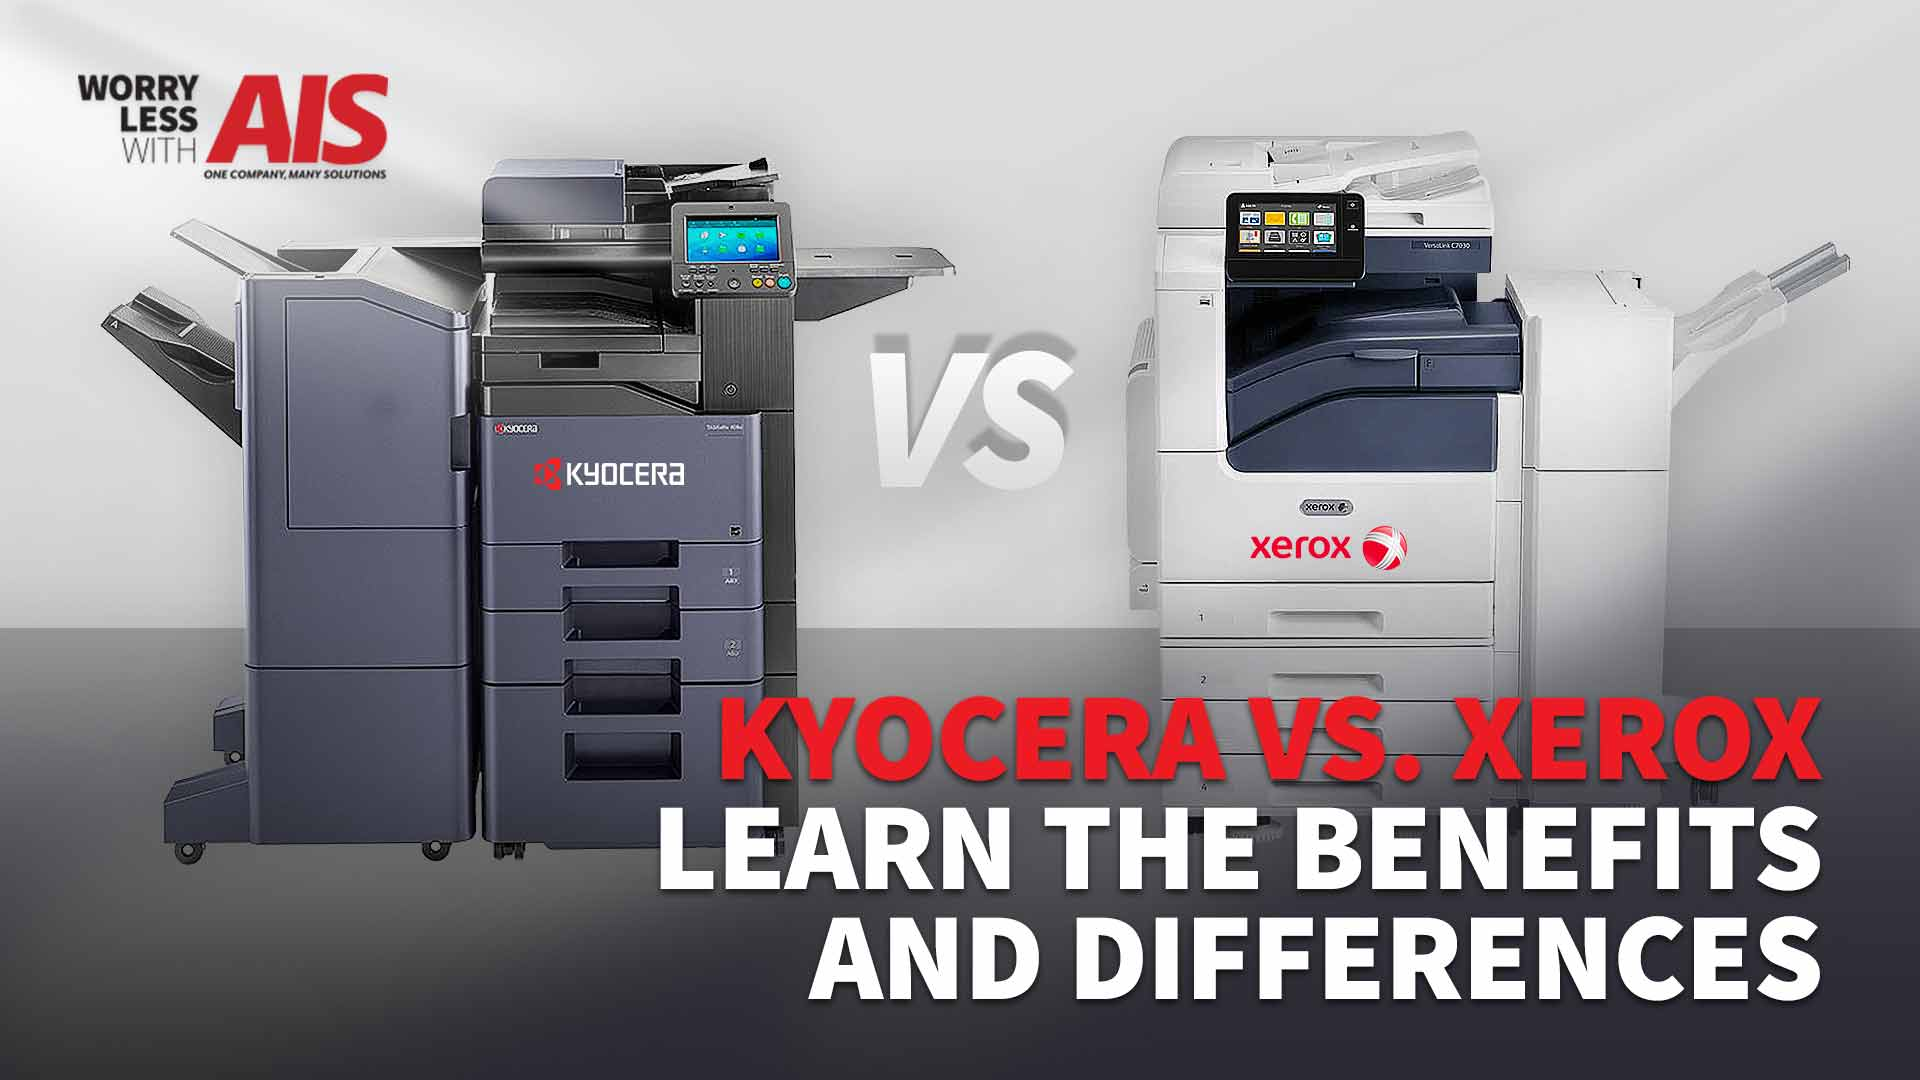 Kyocera vs. Xerox: Learn The Benefits and Differences